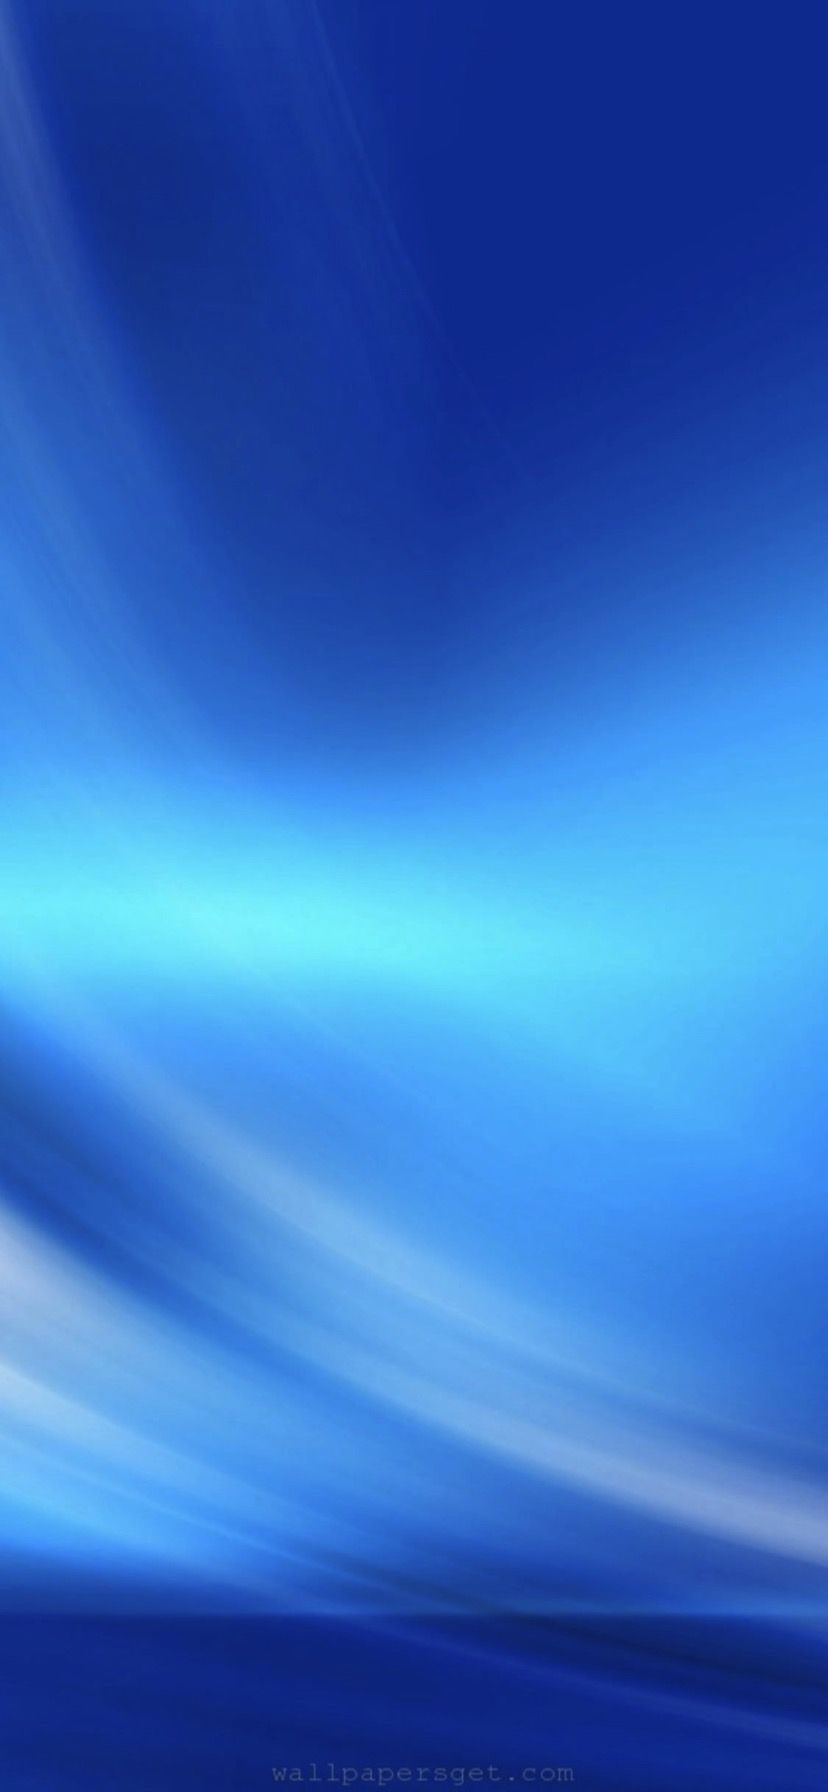 Blue Iphone Xr Wallpapers Top Free Blue Iphone Xr Backgrounds Wallpaperaccess